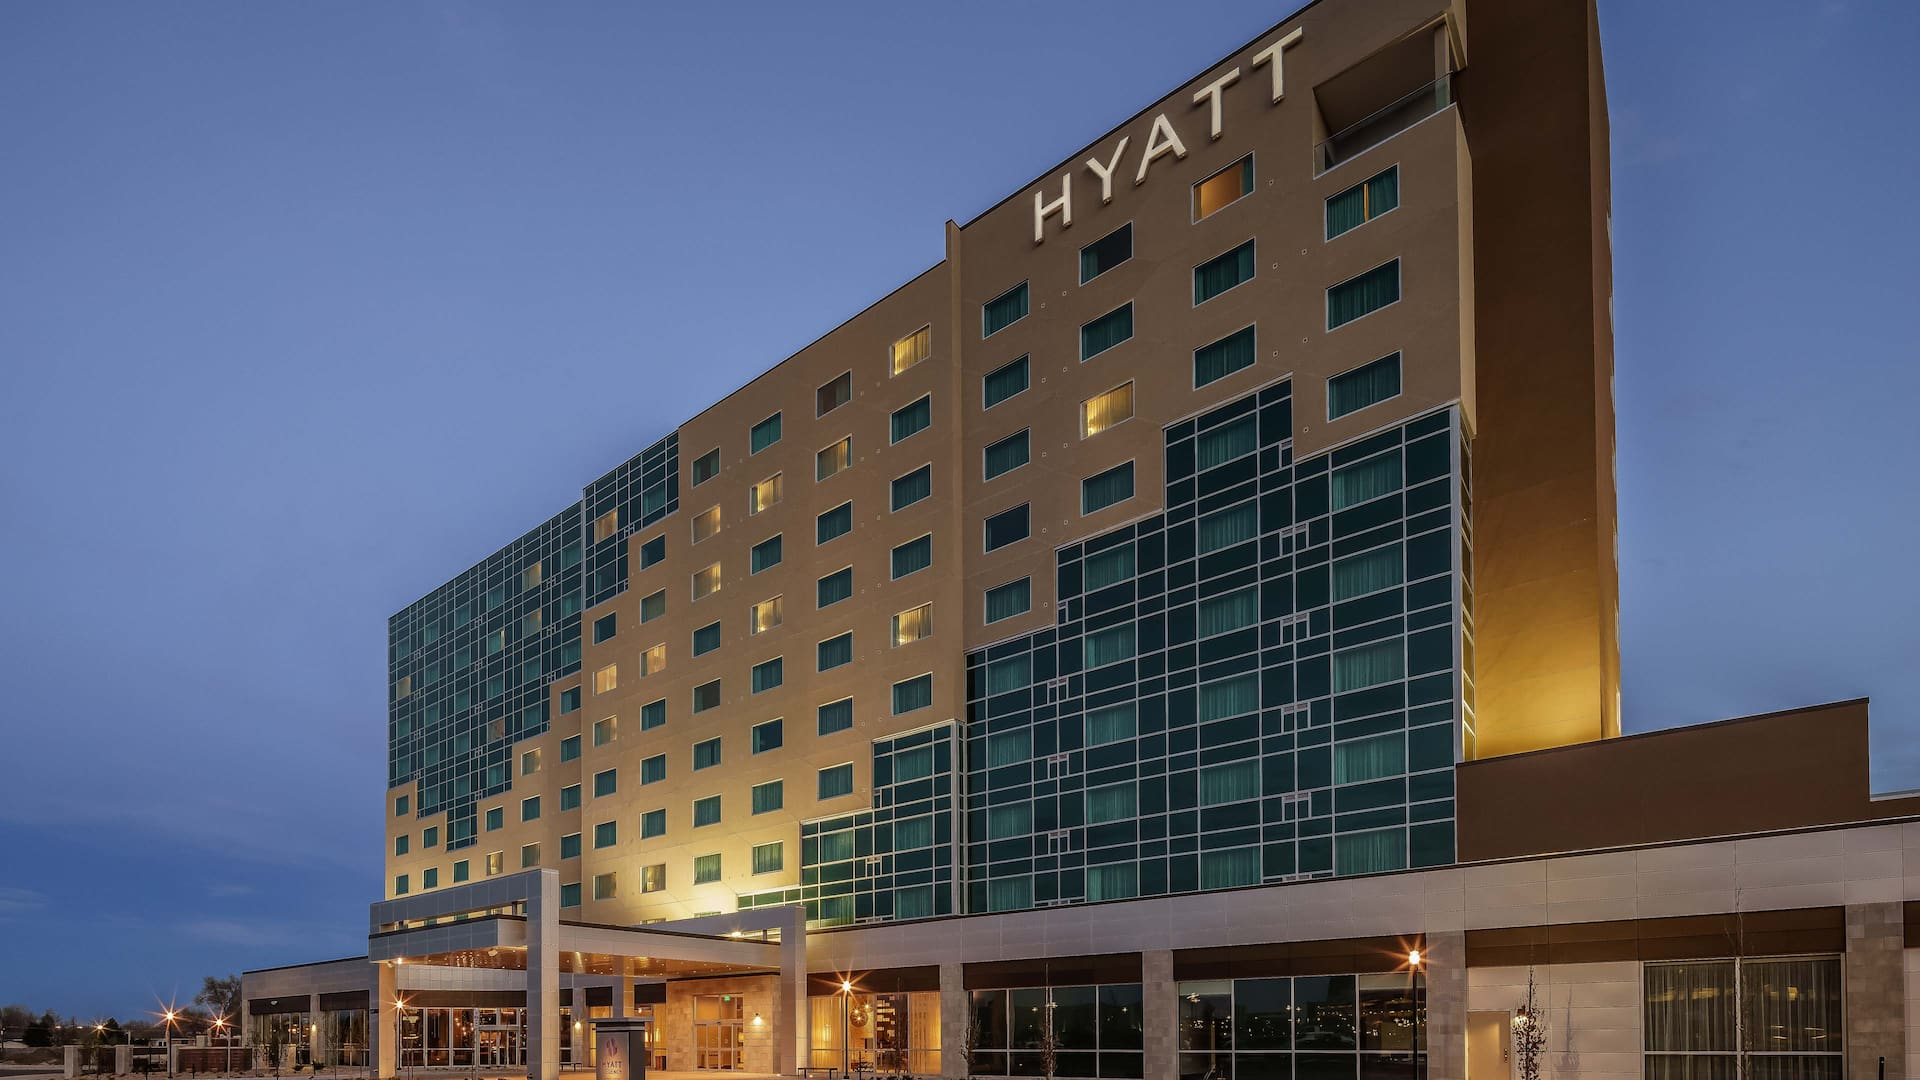 Hyatt Regency Auroora Denver Conference Center Exterior